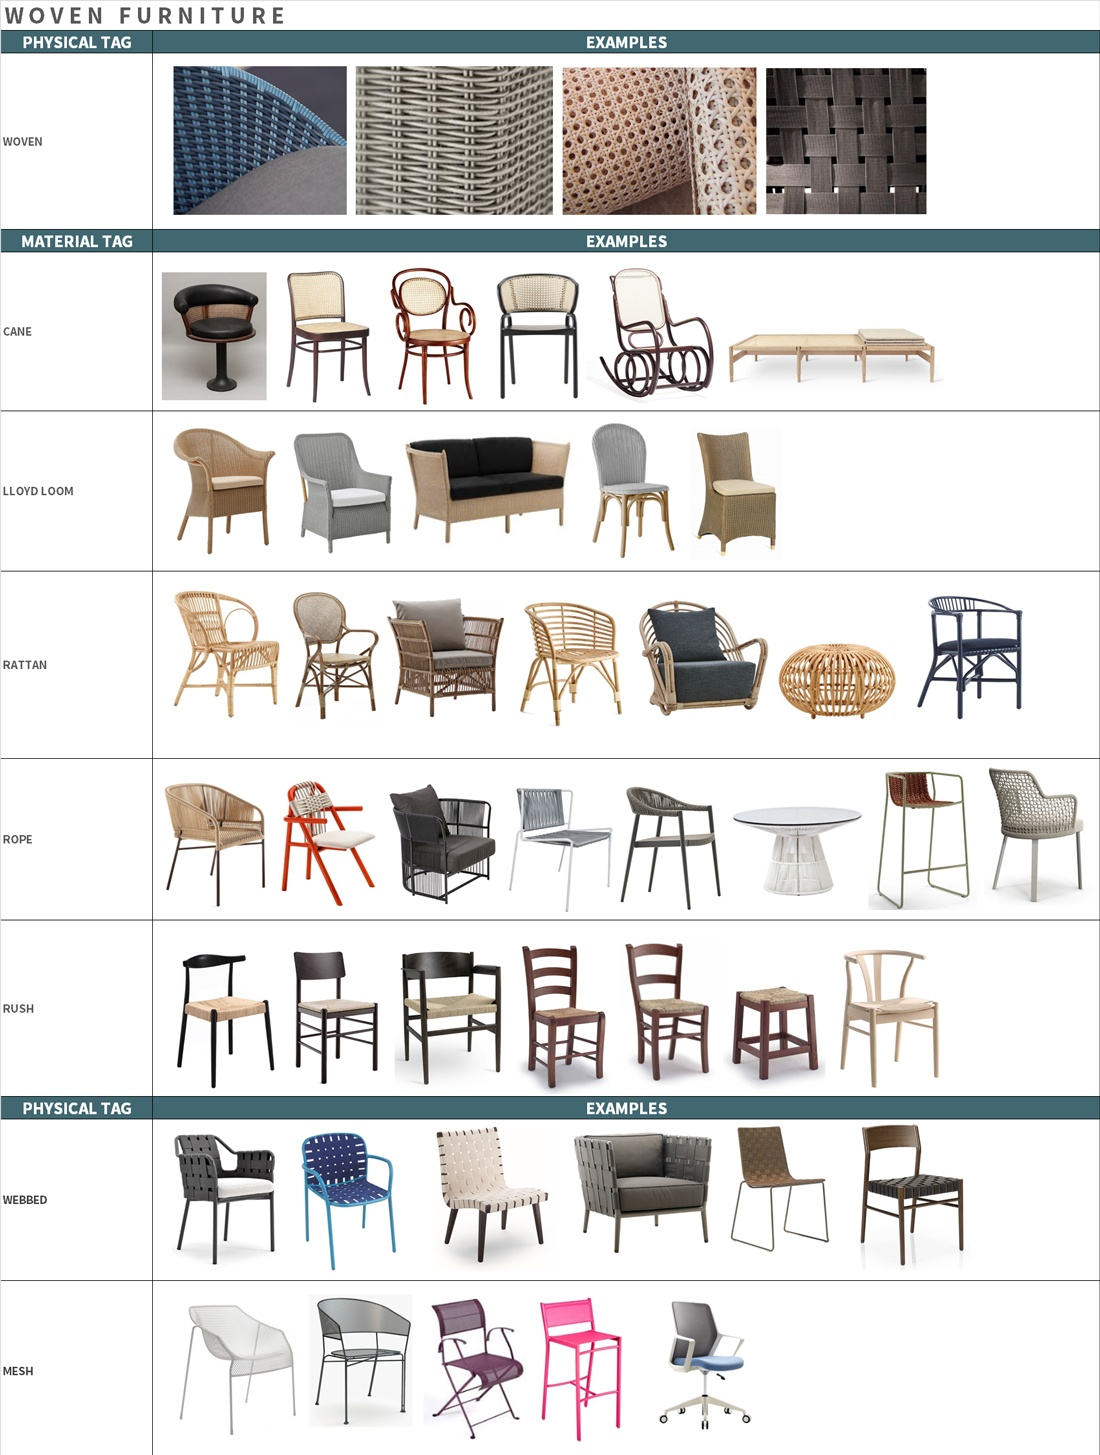 woven furniture infographic table showing examples